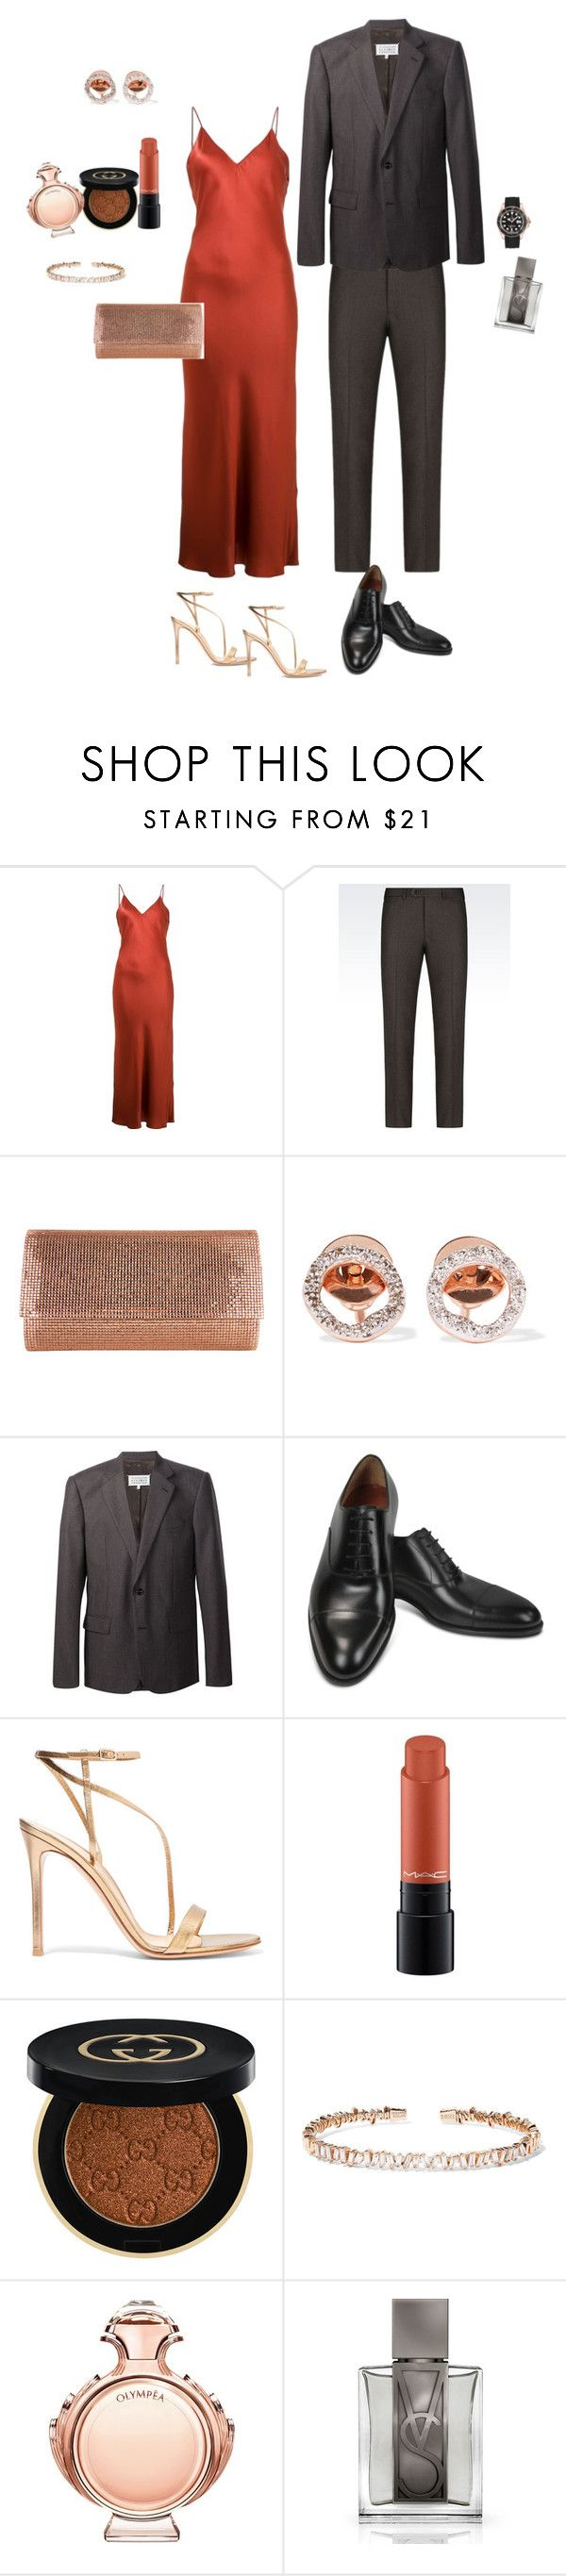 """Untitled #176"" by ms-hinds ❤ liked on Polyvore featuring Protagonist, Armani Collezioni, Judith Leiber, Monica Vinader, Maison Margiela, Fratelli Rossetti, Gianvito Rossi, MAC Cosmetics, Gucci and Suzanne Kalan"